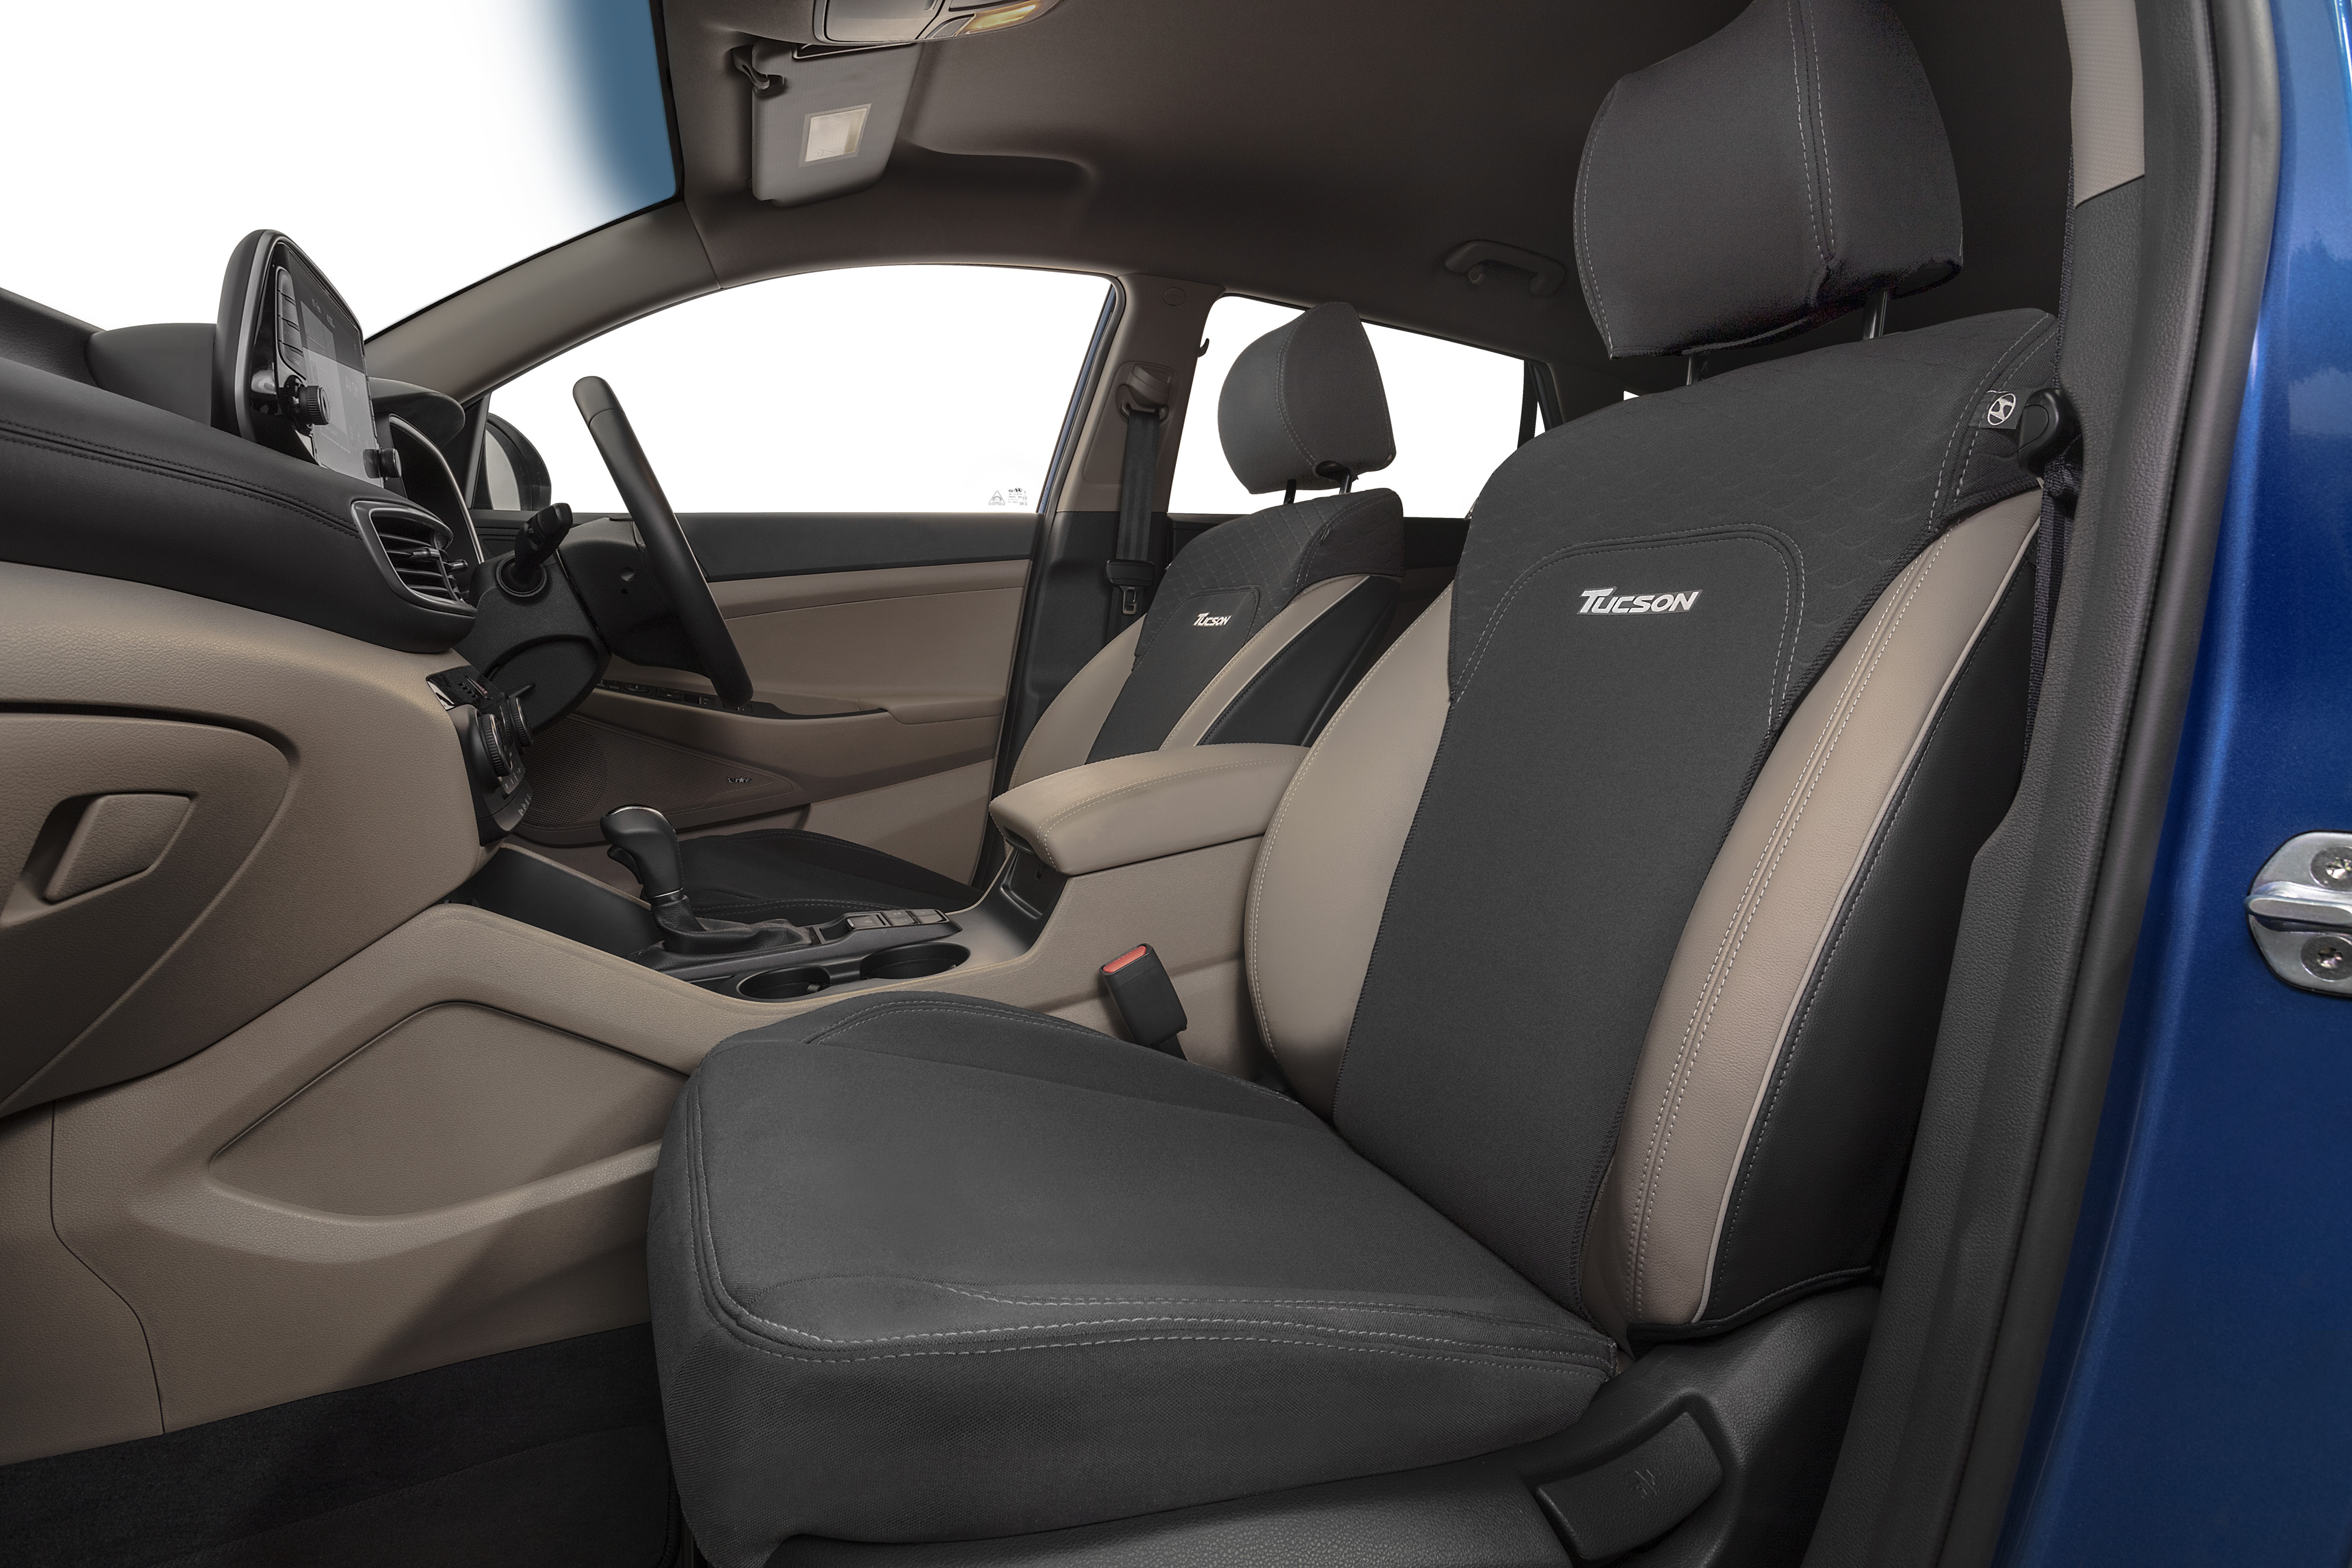 Tucson_accessories_SeatCover_800x600.jpg